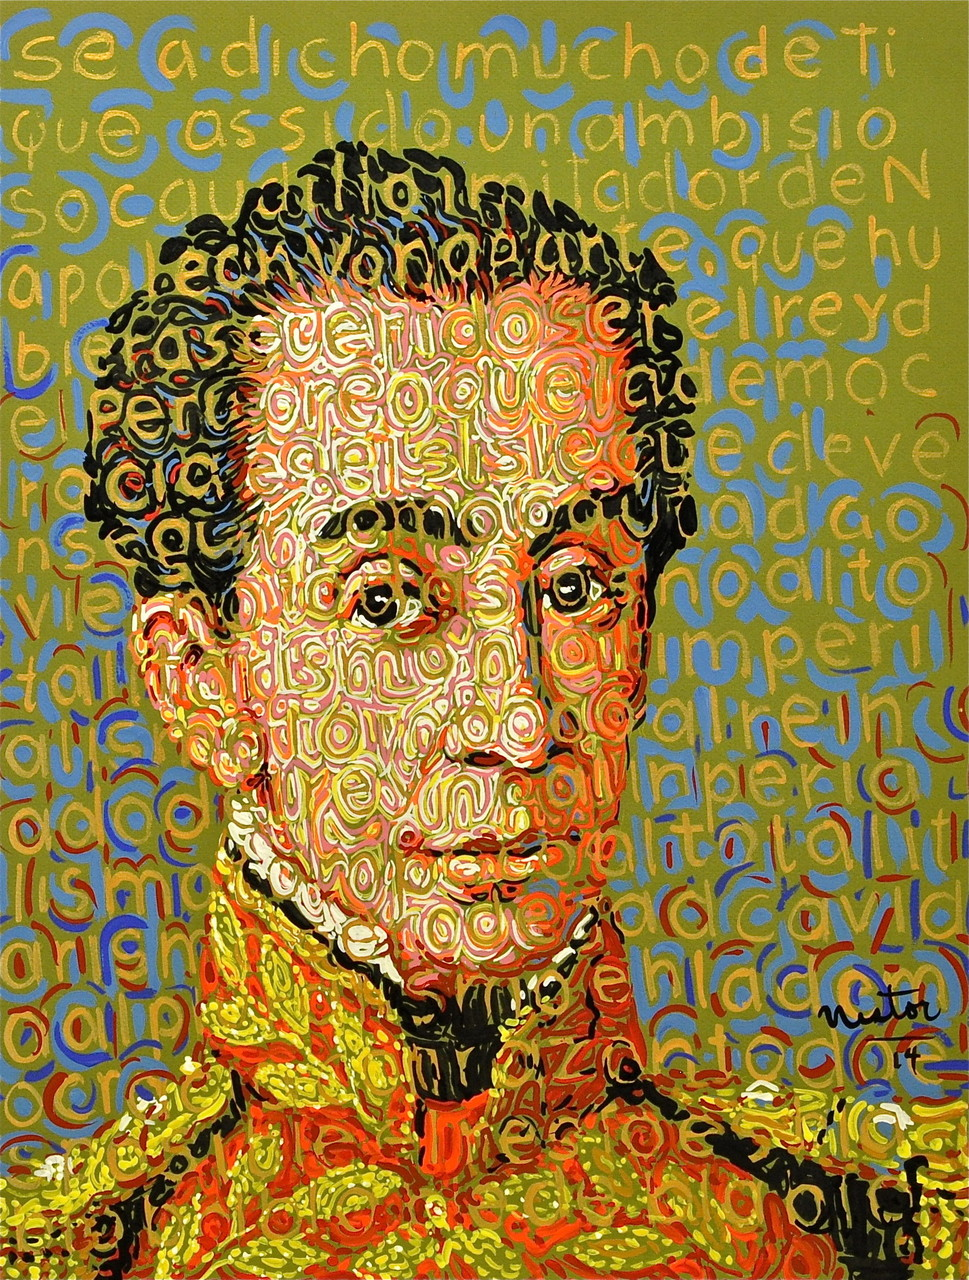 """Simon Bolivar"", 2014, Acrylic on paper, 20 x 25 inches"